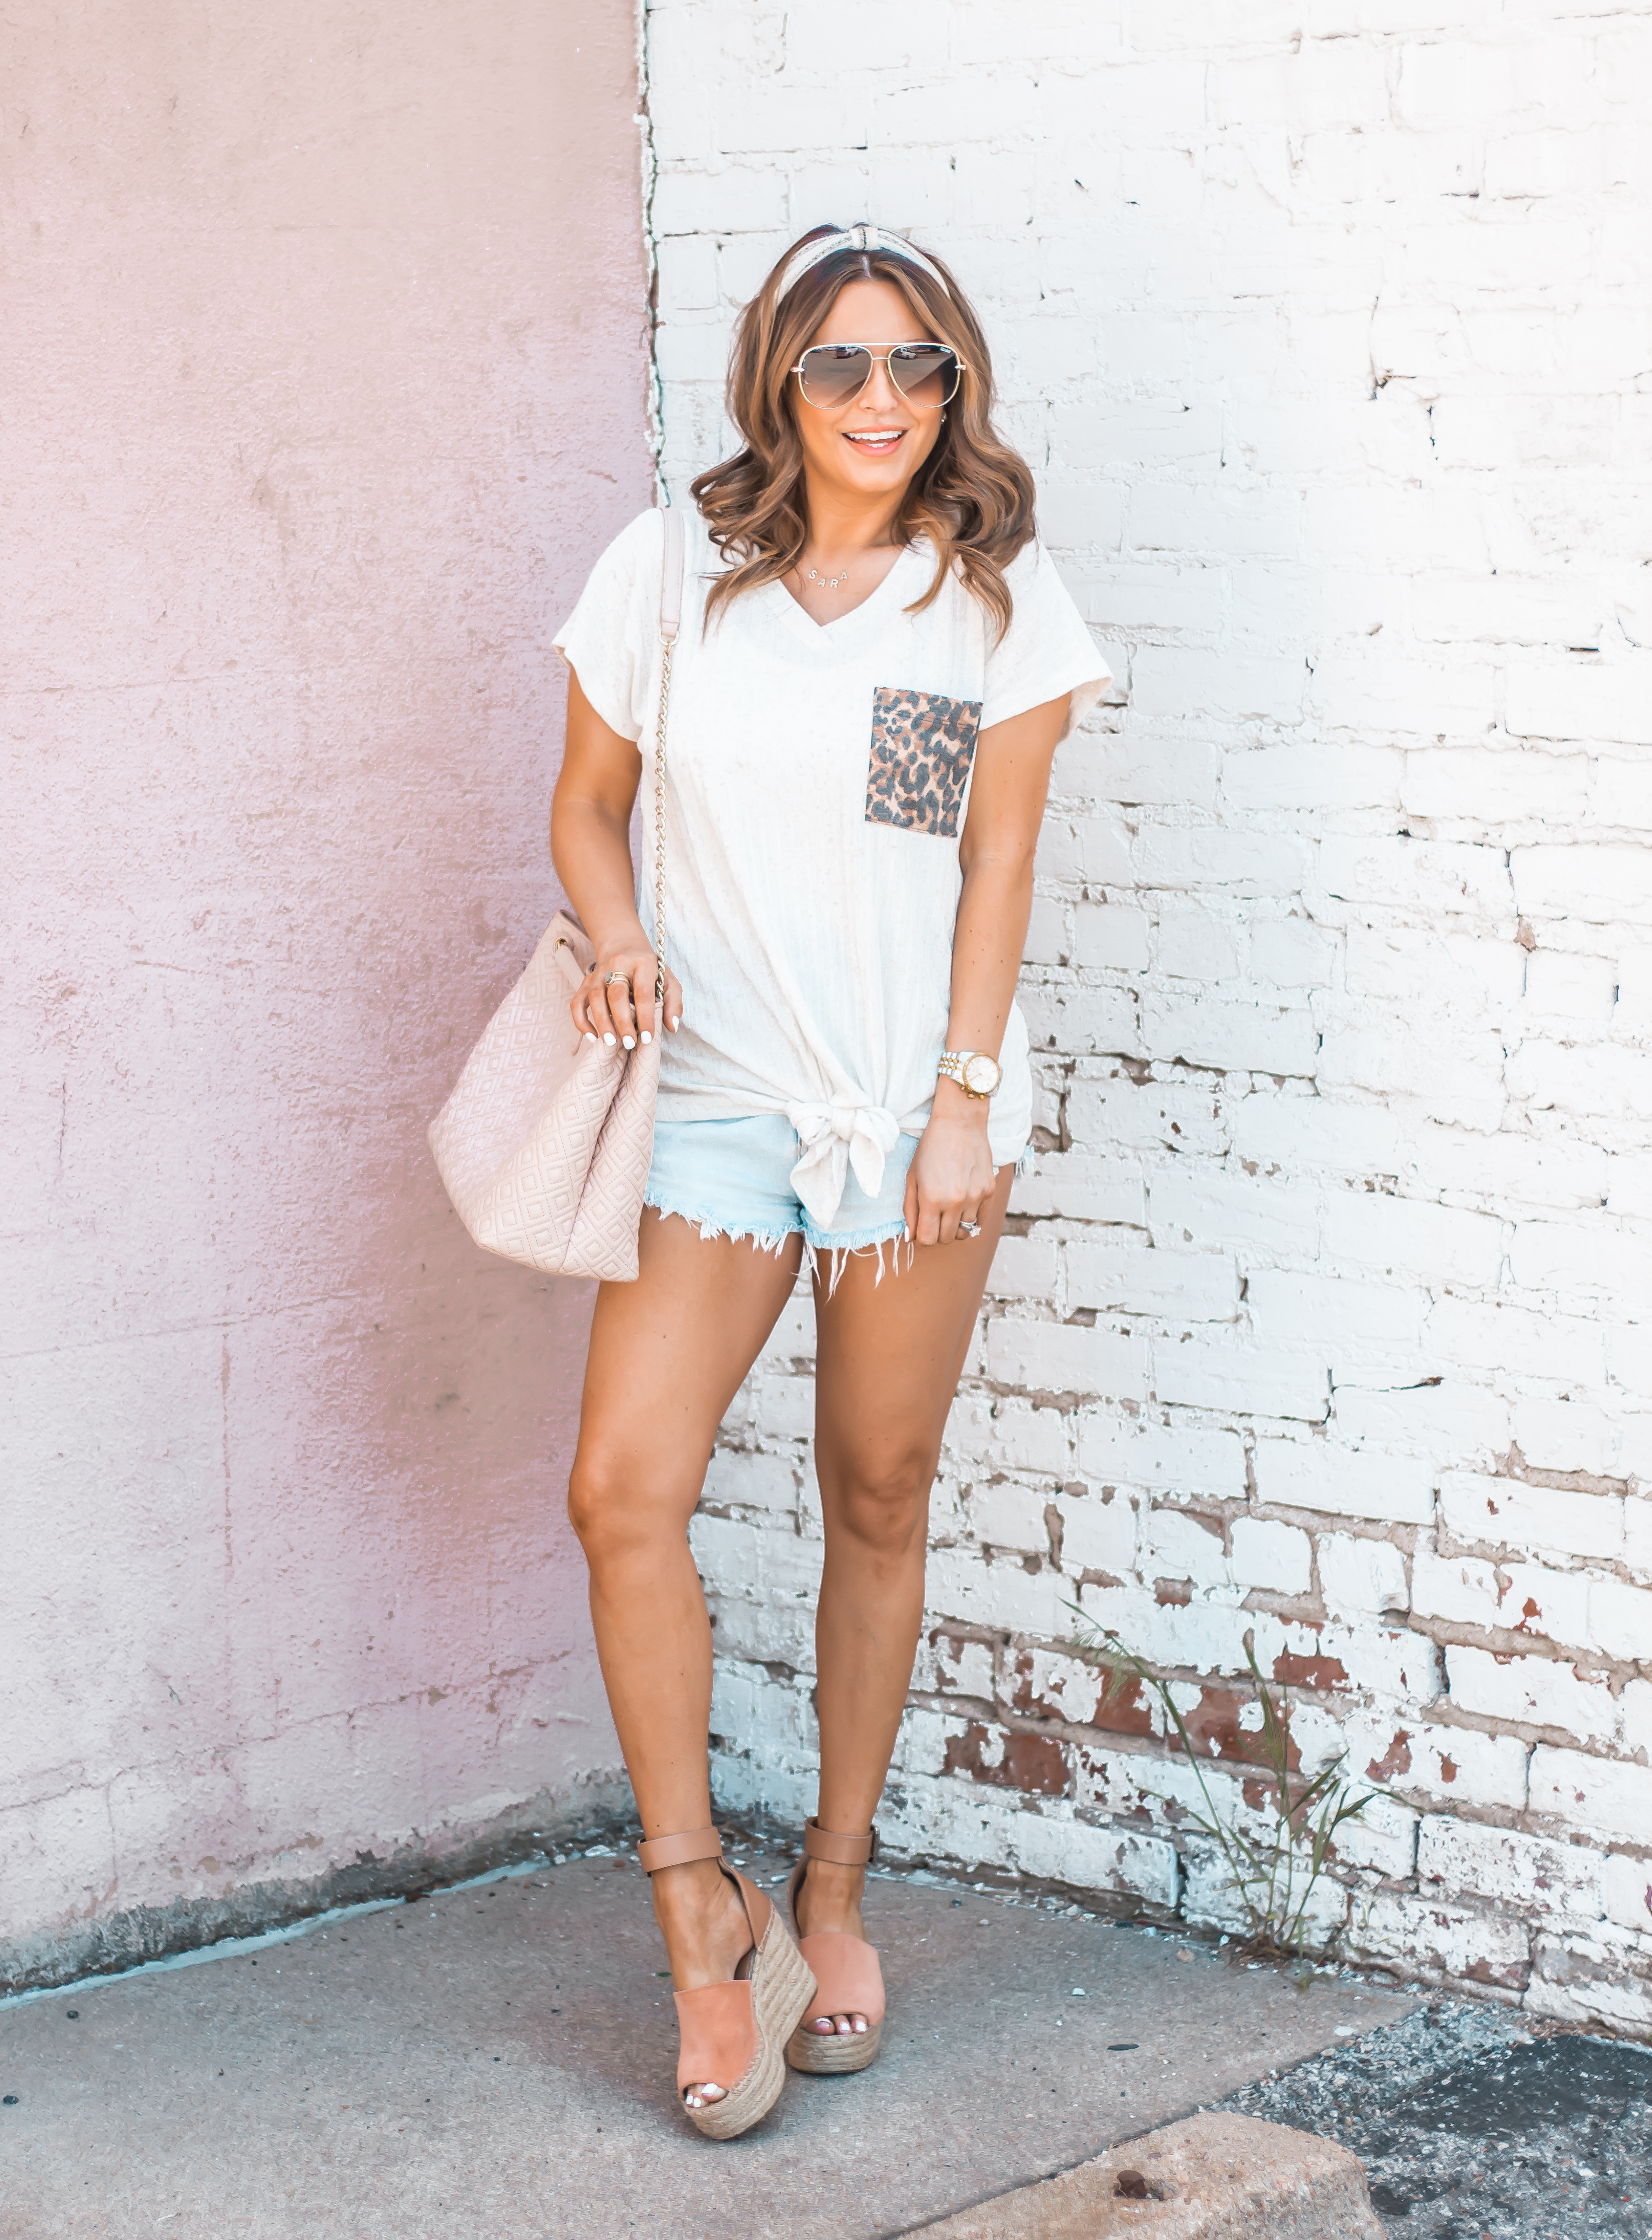 Women's Fashion-Summer Fashion-Summer Outfit Inspiration-Sabby Style-Omaha Blogger-Leopard Pocket Top-The Style Bar Boutique-Cutoff Shorts-Espadrille Wedges-Marc Fisher Wedges-Tory Burch Fleming-Quay Sunglasses-Headband Trend-Omaha-Nebraska-Midwest Blogger-14